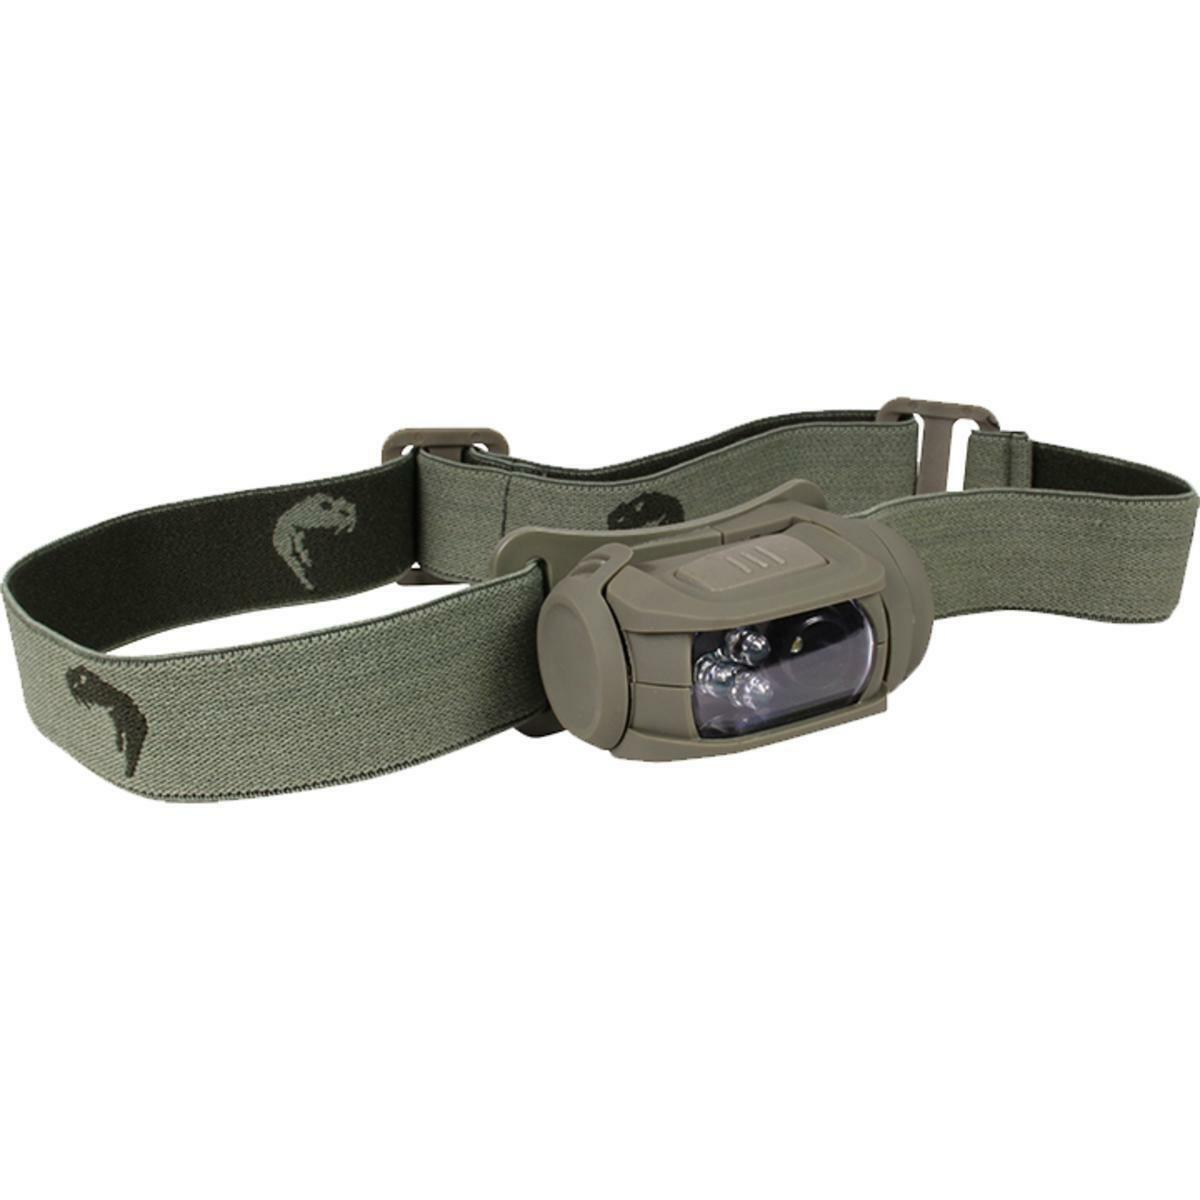 LIGHTWEIGHT HUNTING LAMPING SPECIAL OPS LED HEAD TORCH HEADTORCH HEAD LAMP